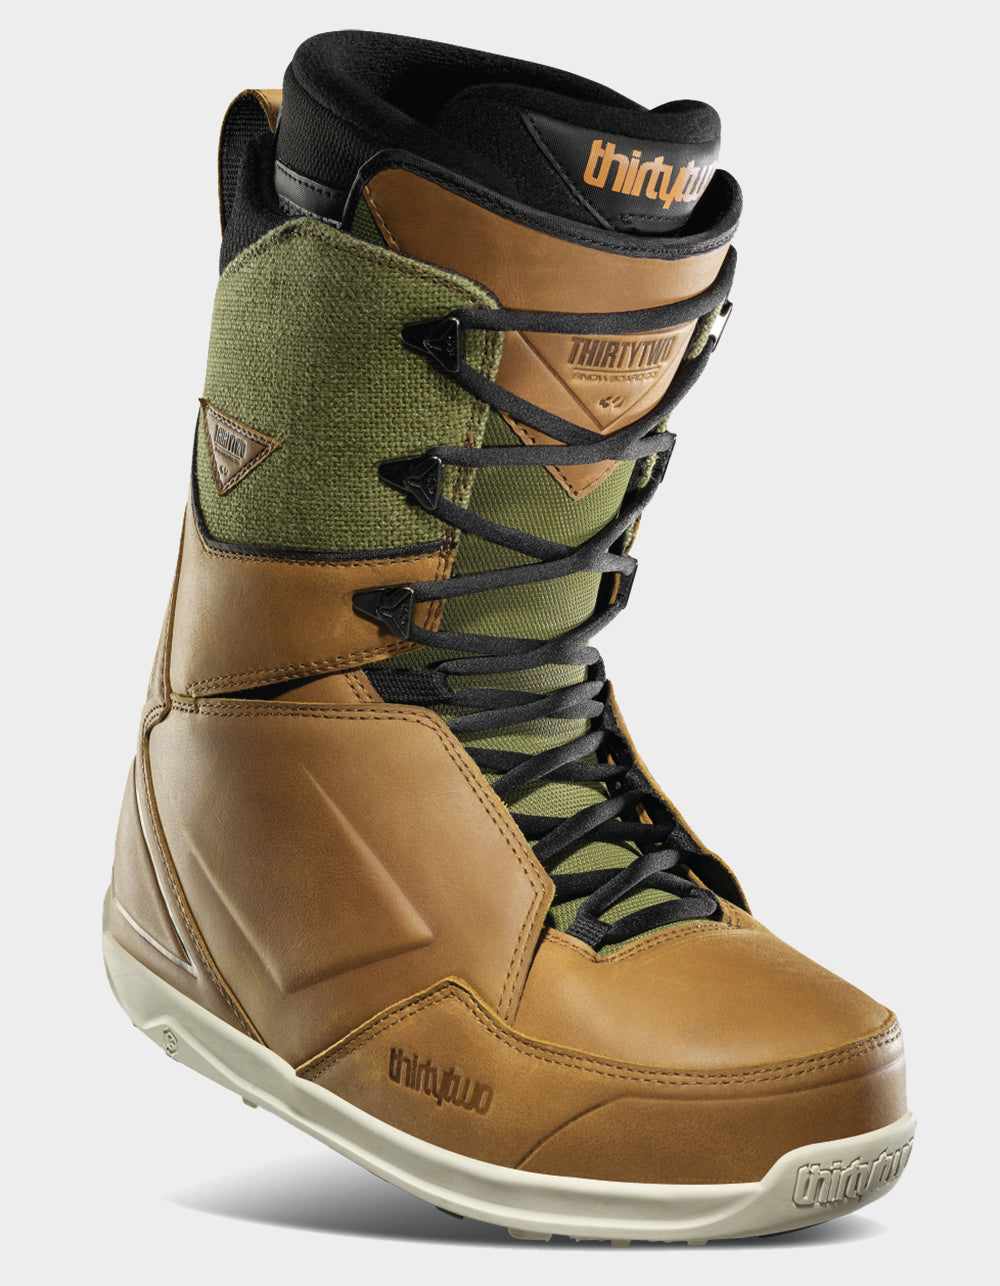 THIRTYTWO Lashed Premium Boots